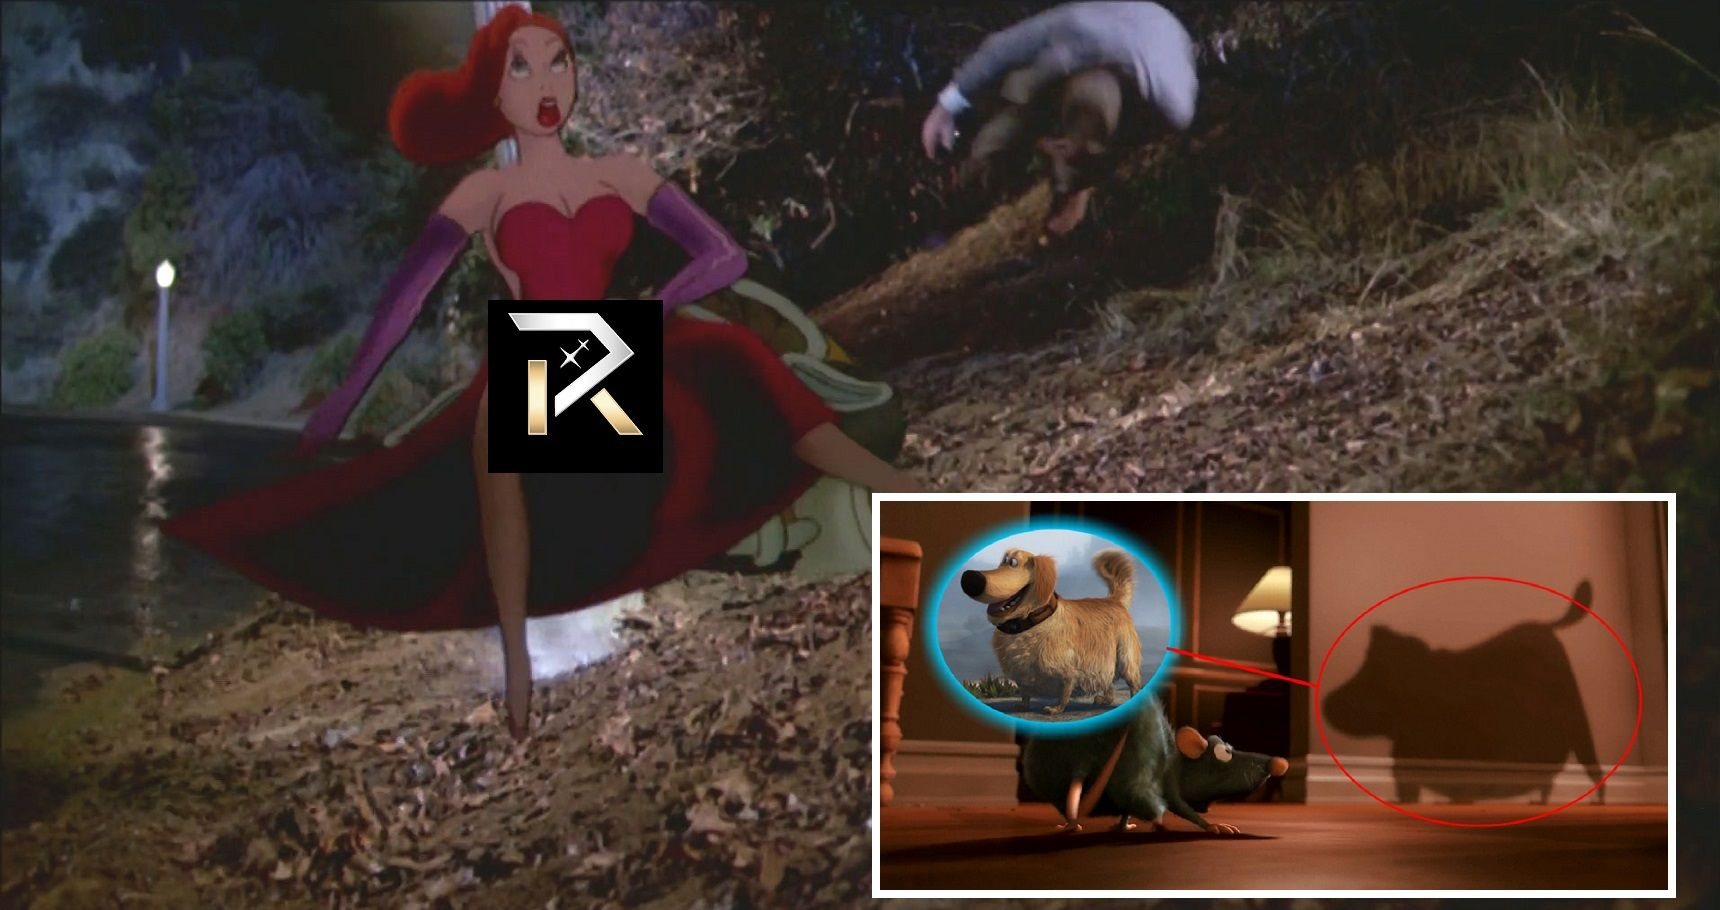 20 Secrets You Never Noticed Were Hidden In Disney Films